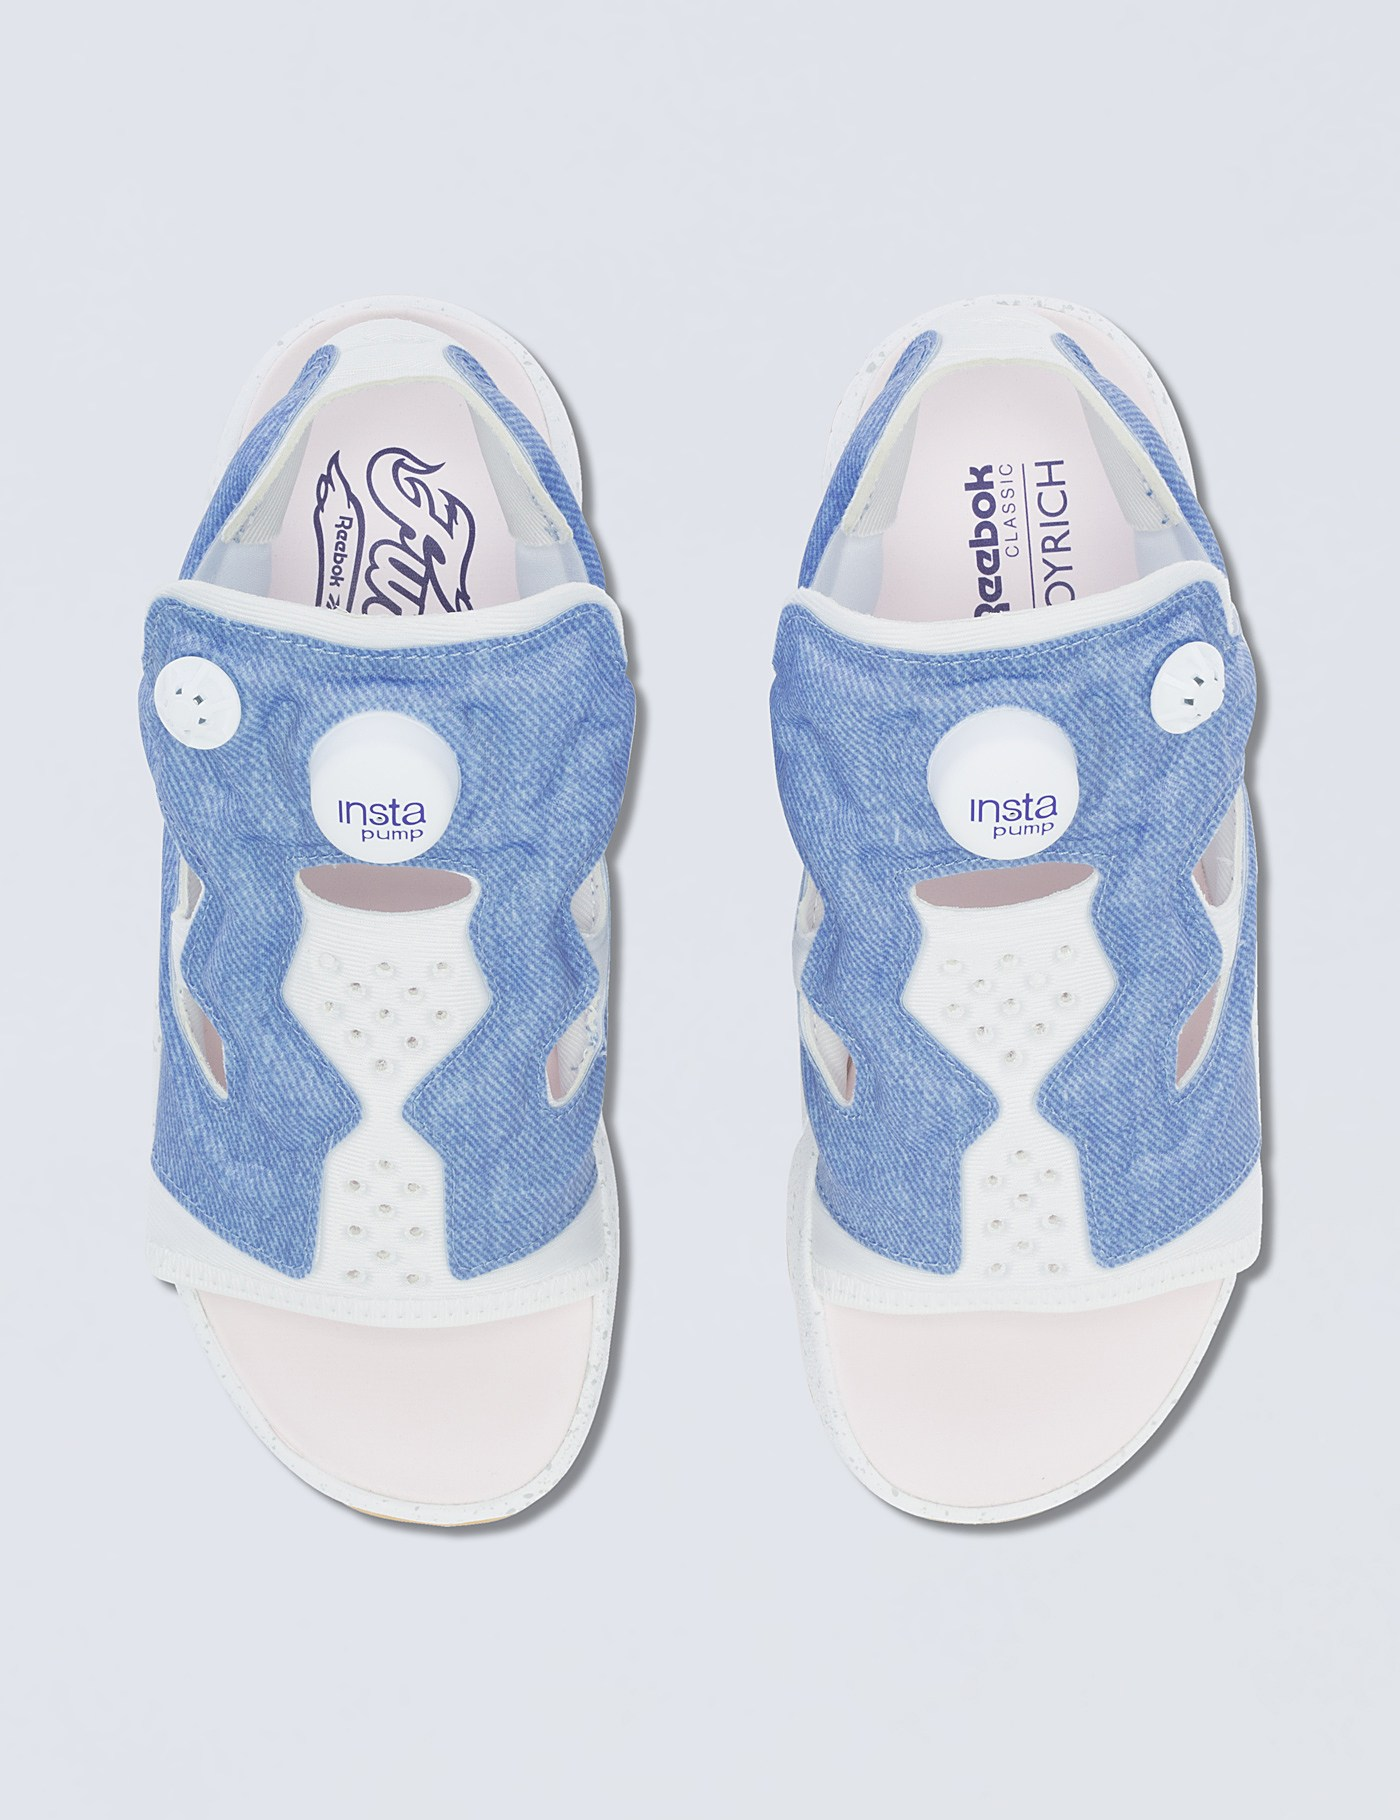 3bddff178b0c Buy Original Reebok Instapump Fury Sandal X Joyrich at Indonesia ...